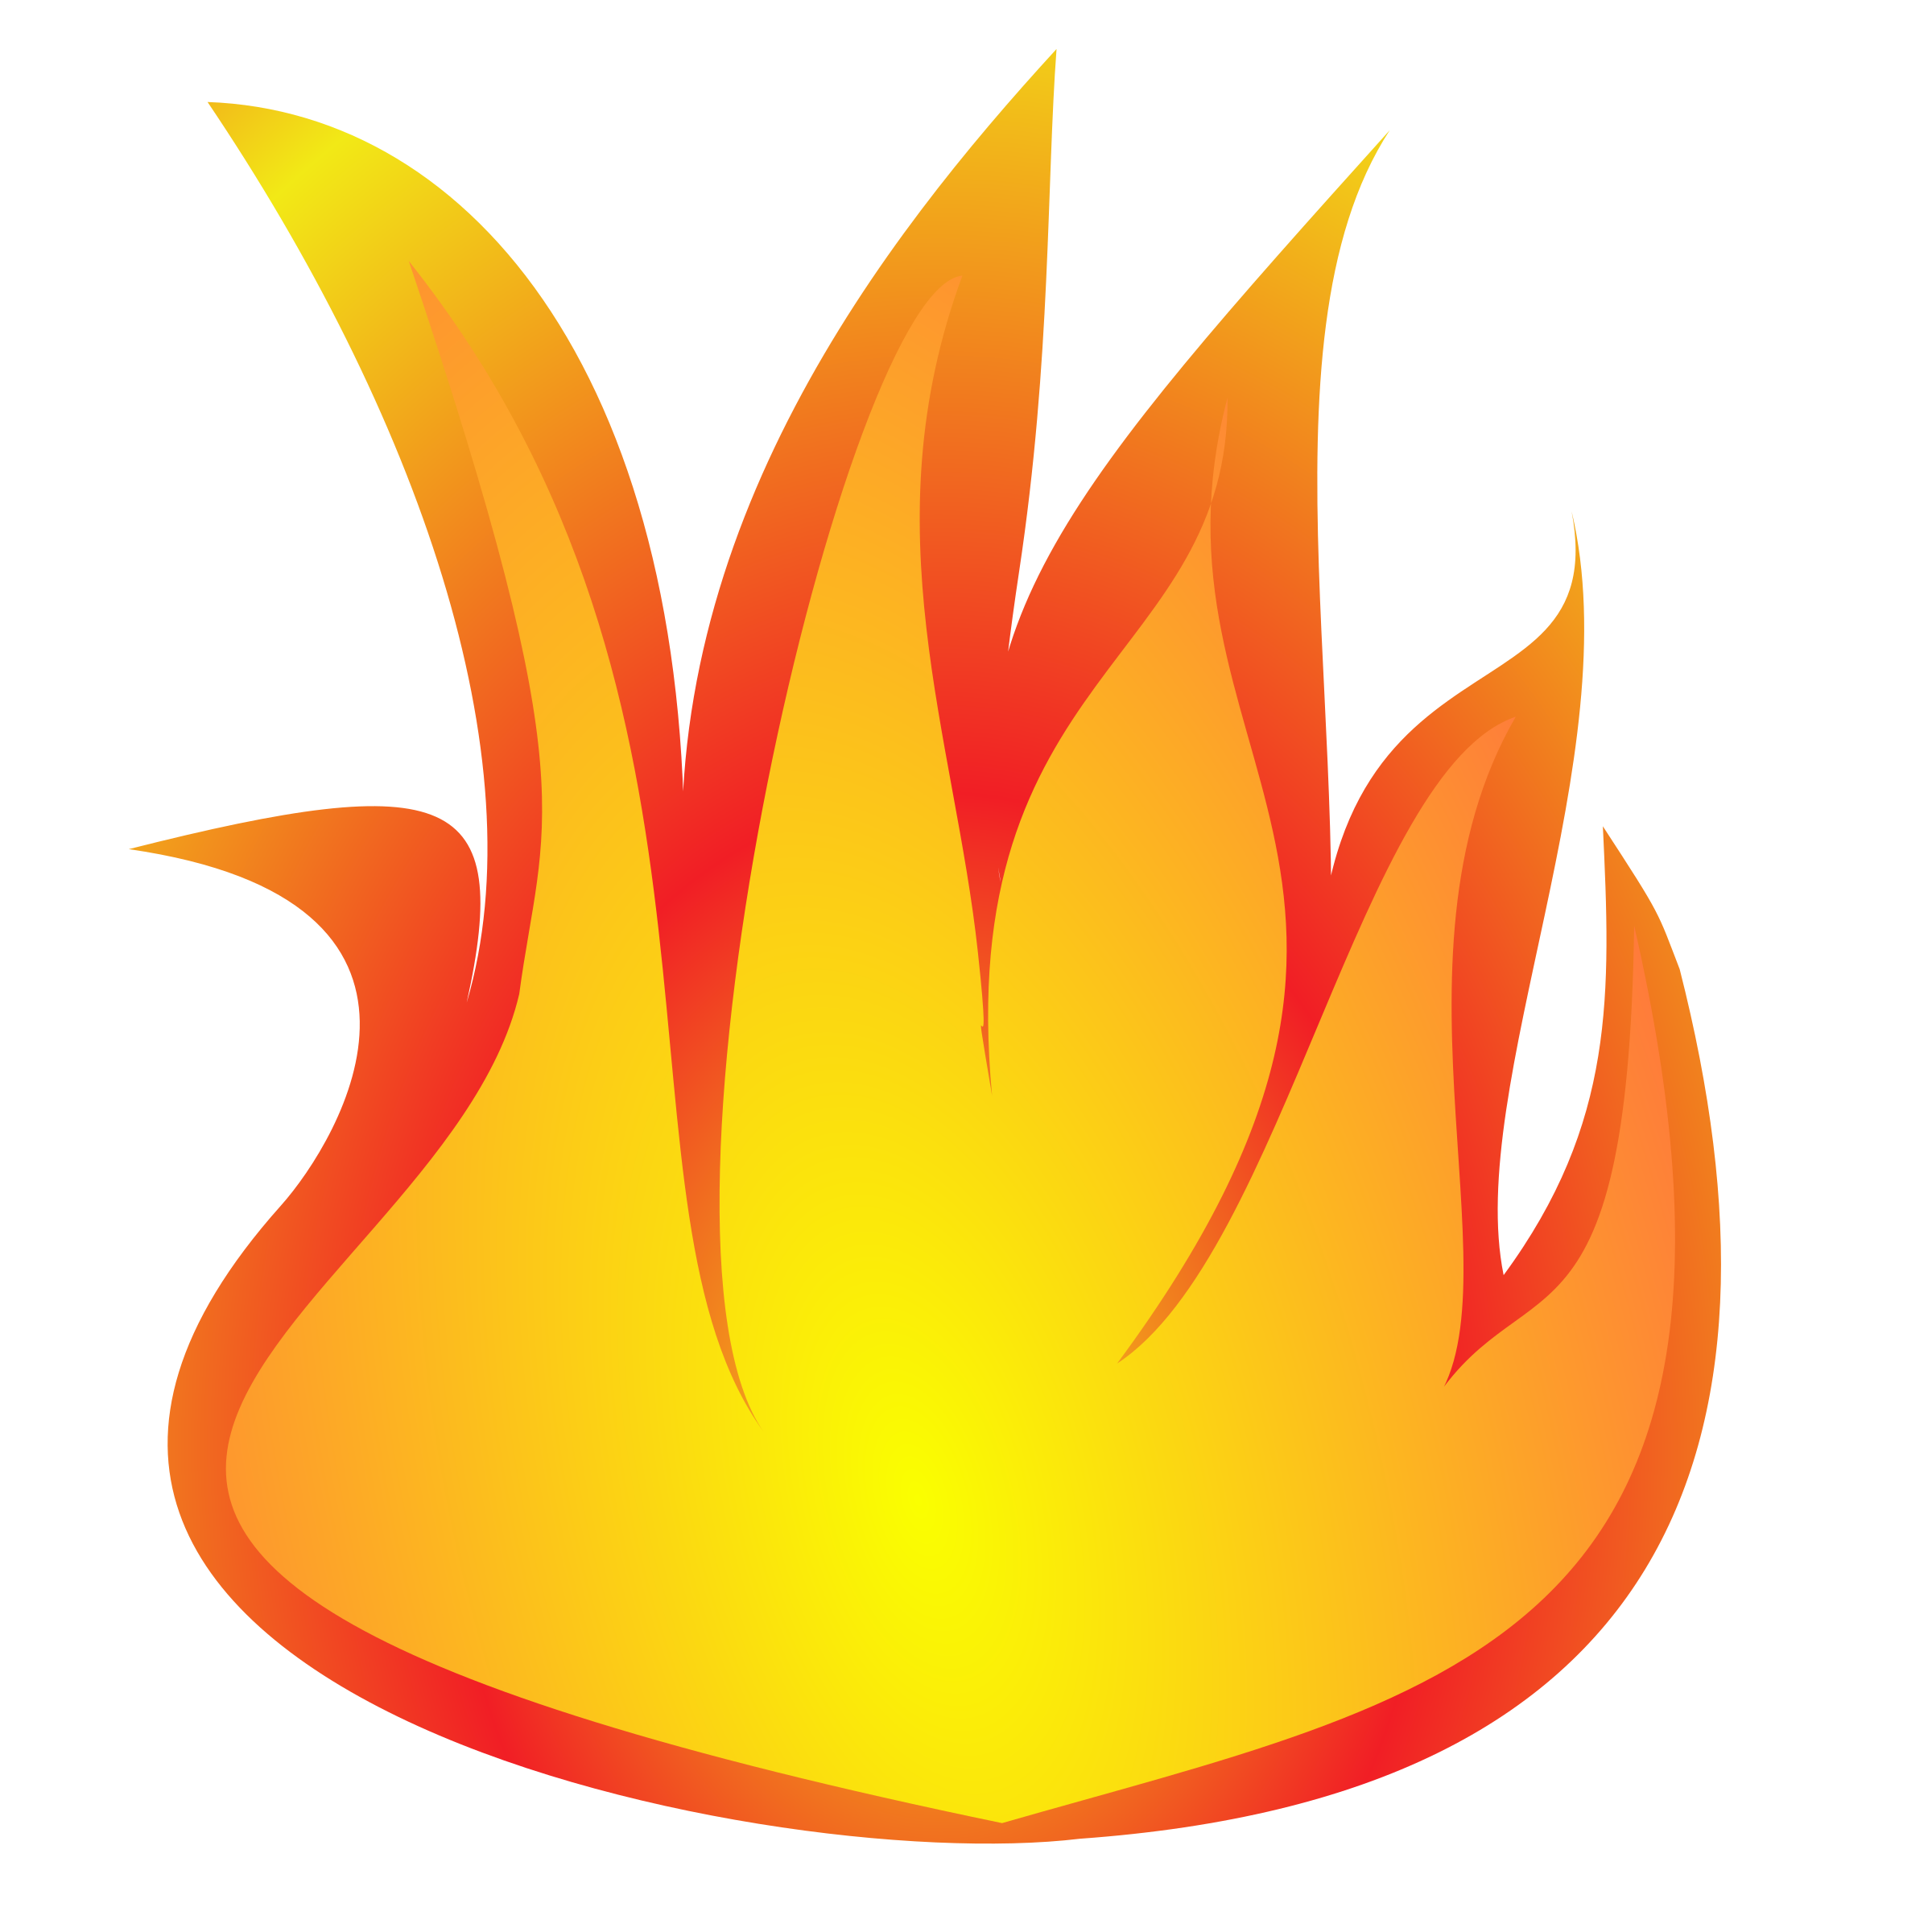 Flames clipart printable Ii fire com image Cliparting